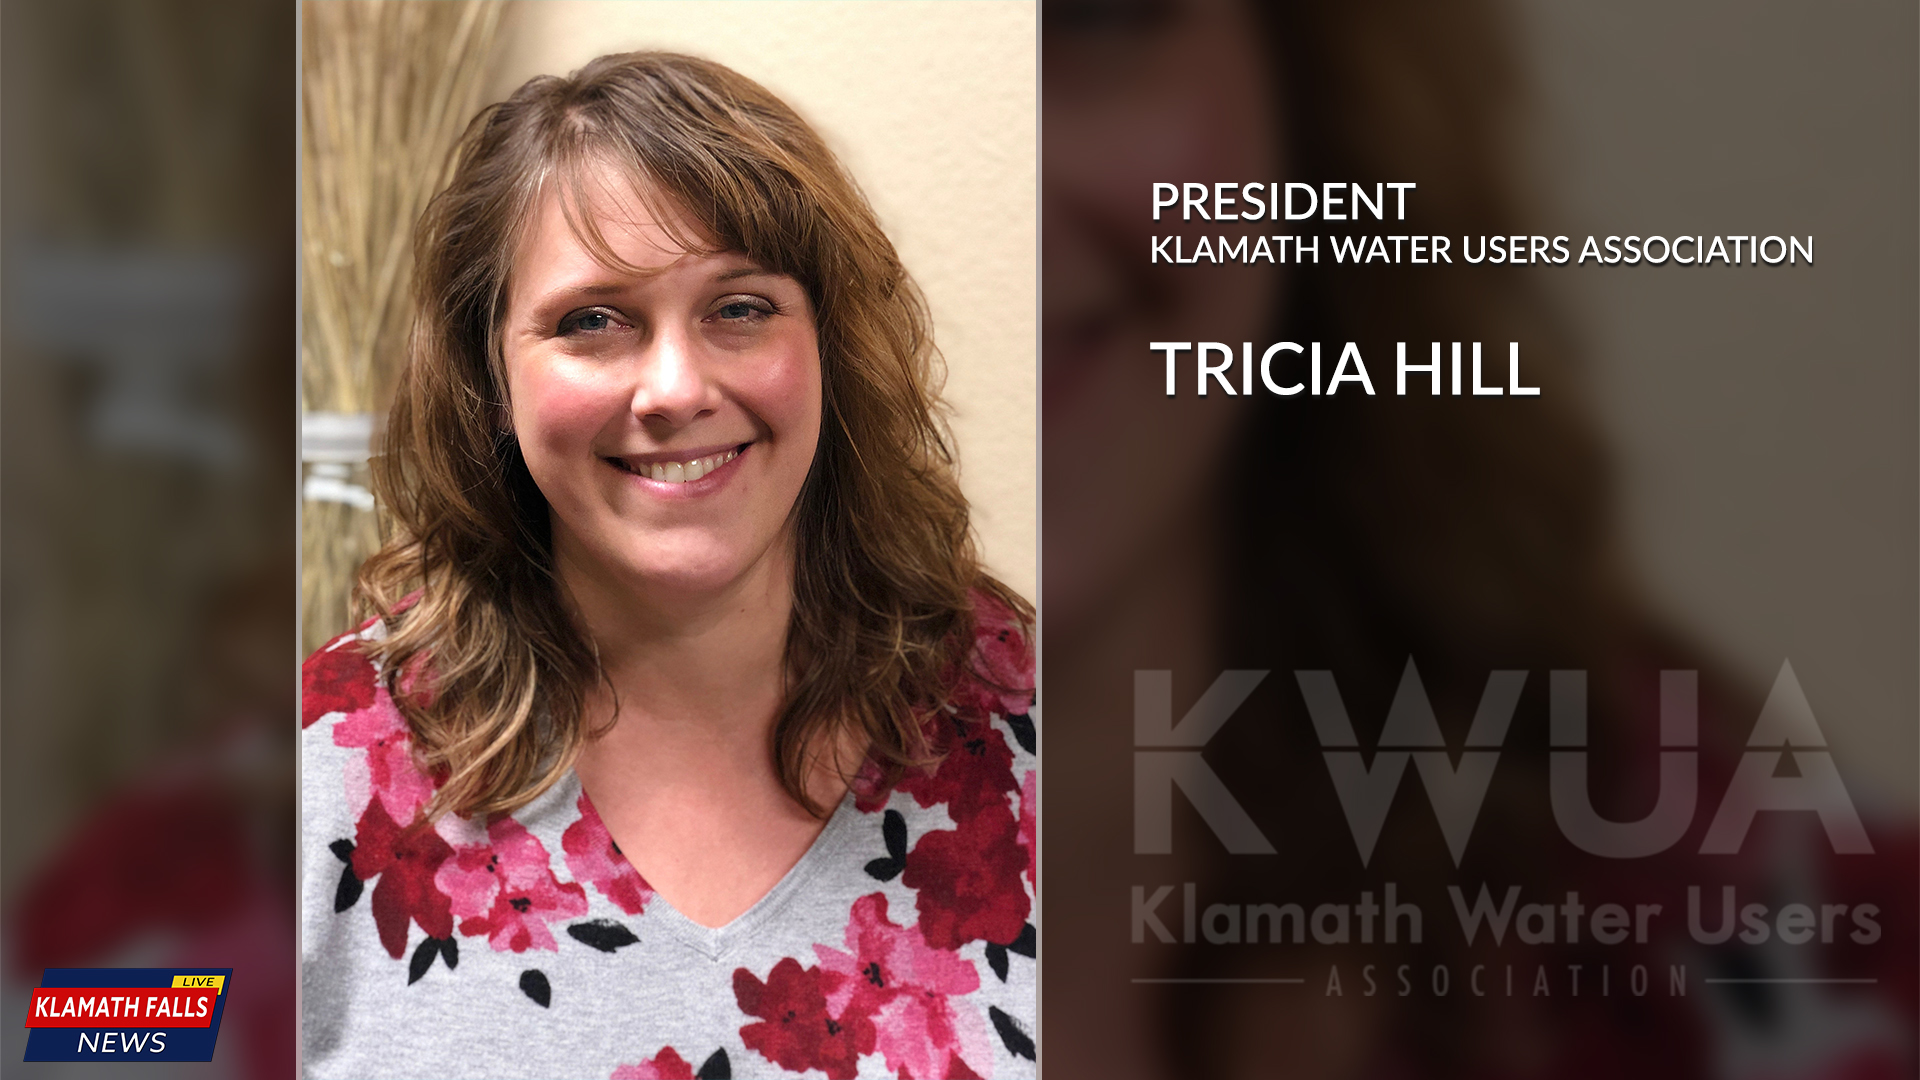 Tricia Hill has been elected as the first woman President of the Klamath Water Users Association (Photo by, Chelsea Shearer)